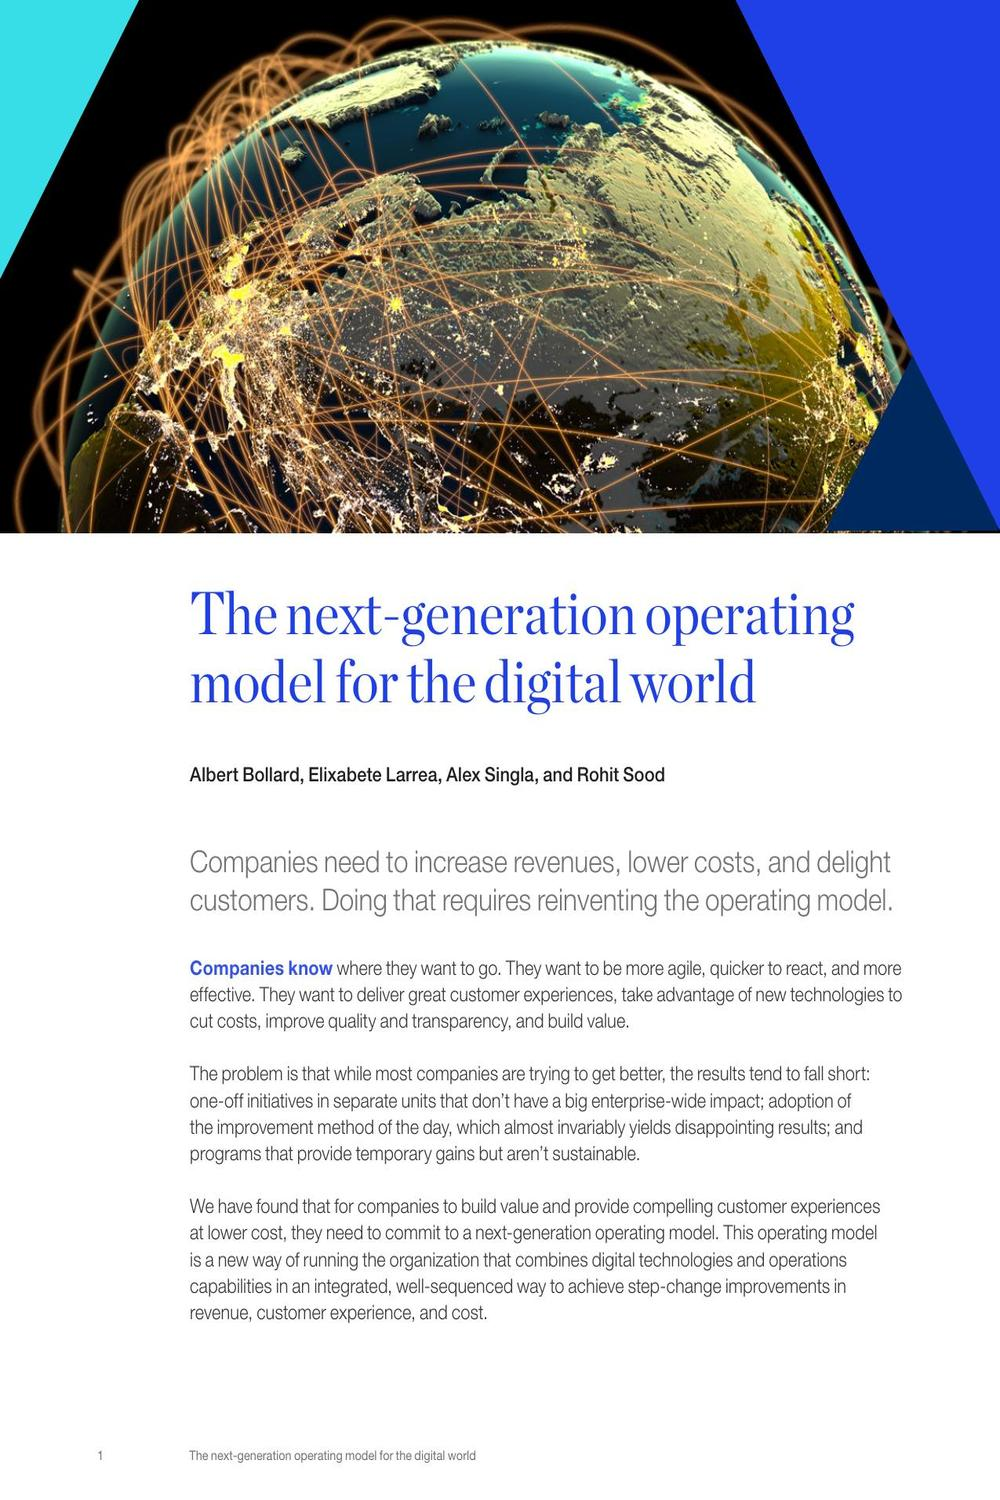 The next-generation operating model for the digital world by